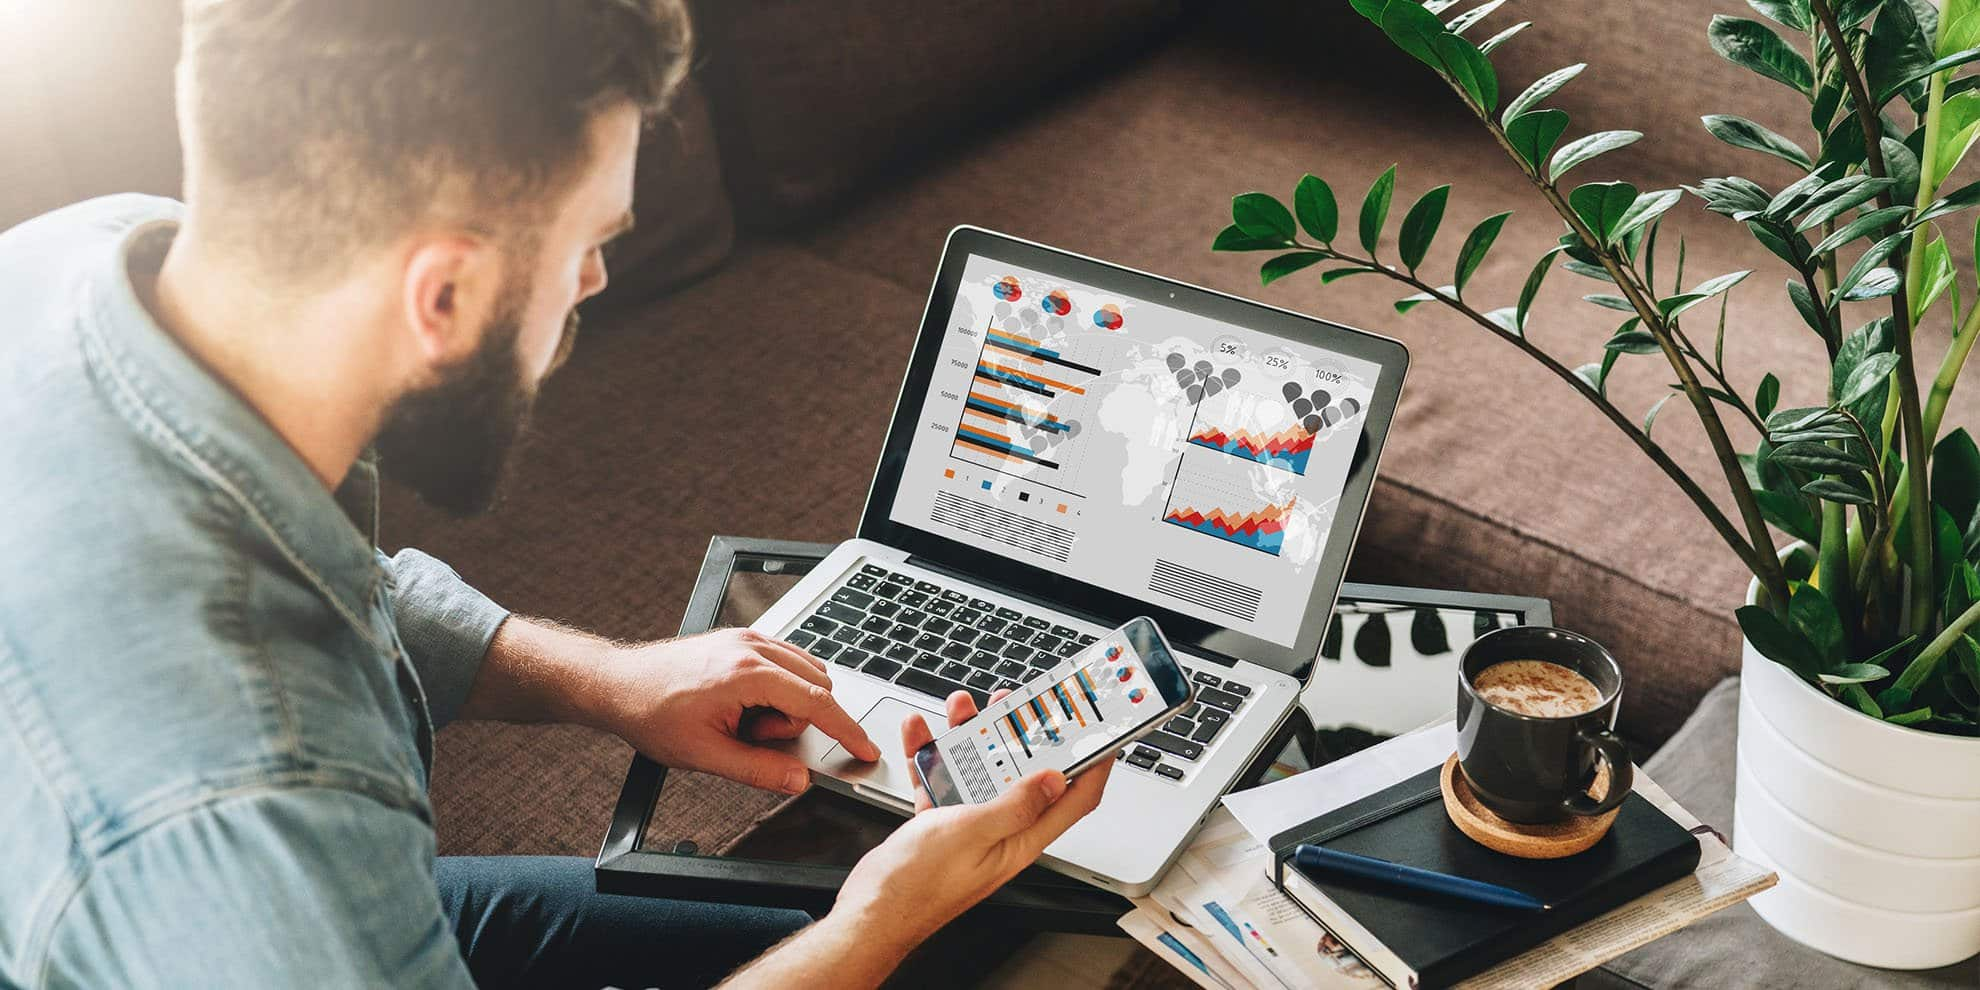 Introduction to Digital Marketing   Find out how to get started - FutureLearn